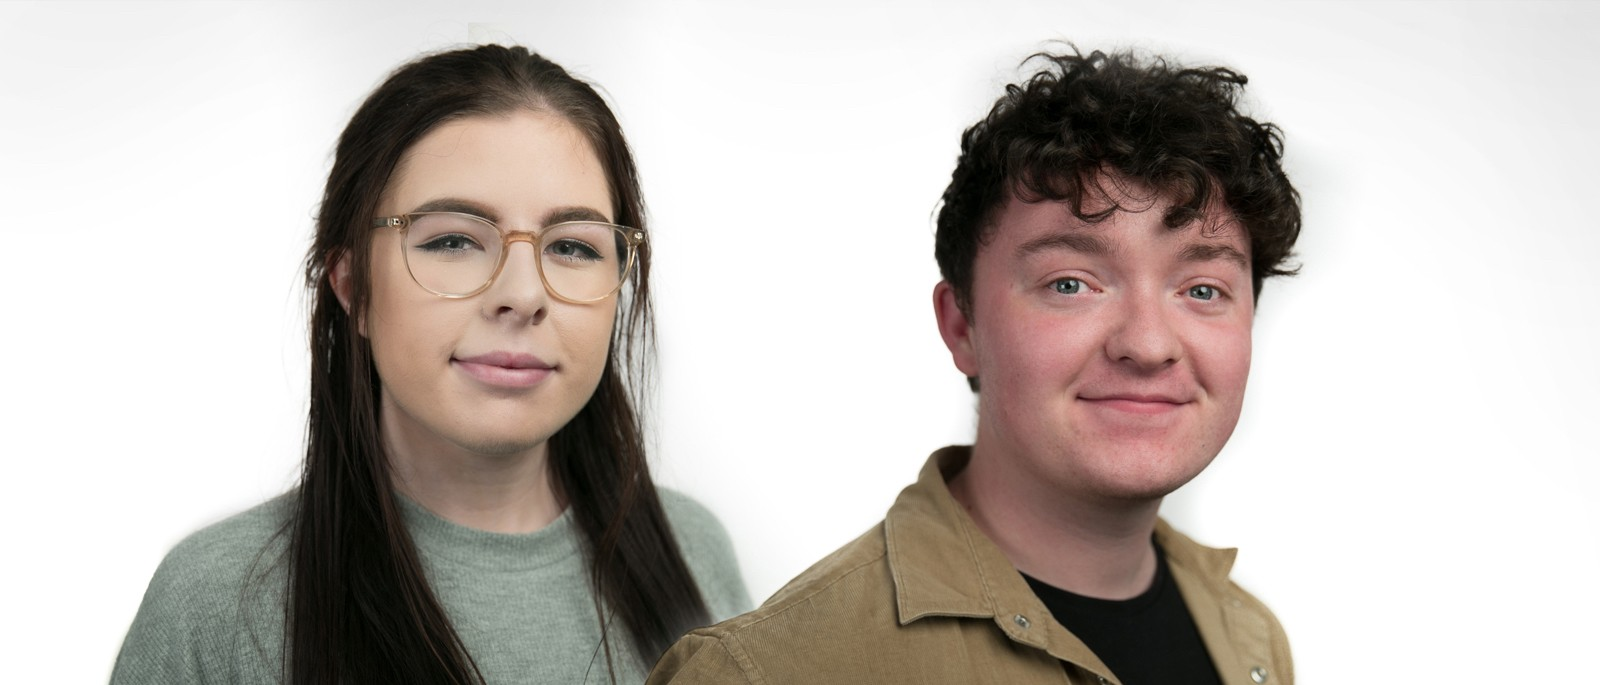 Say hello to Shannon and Gareth...